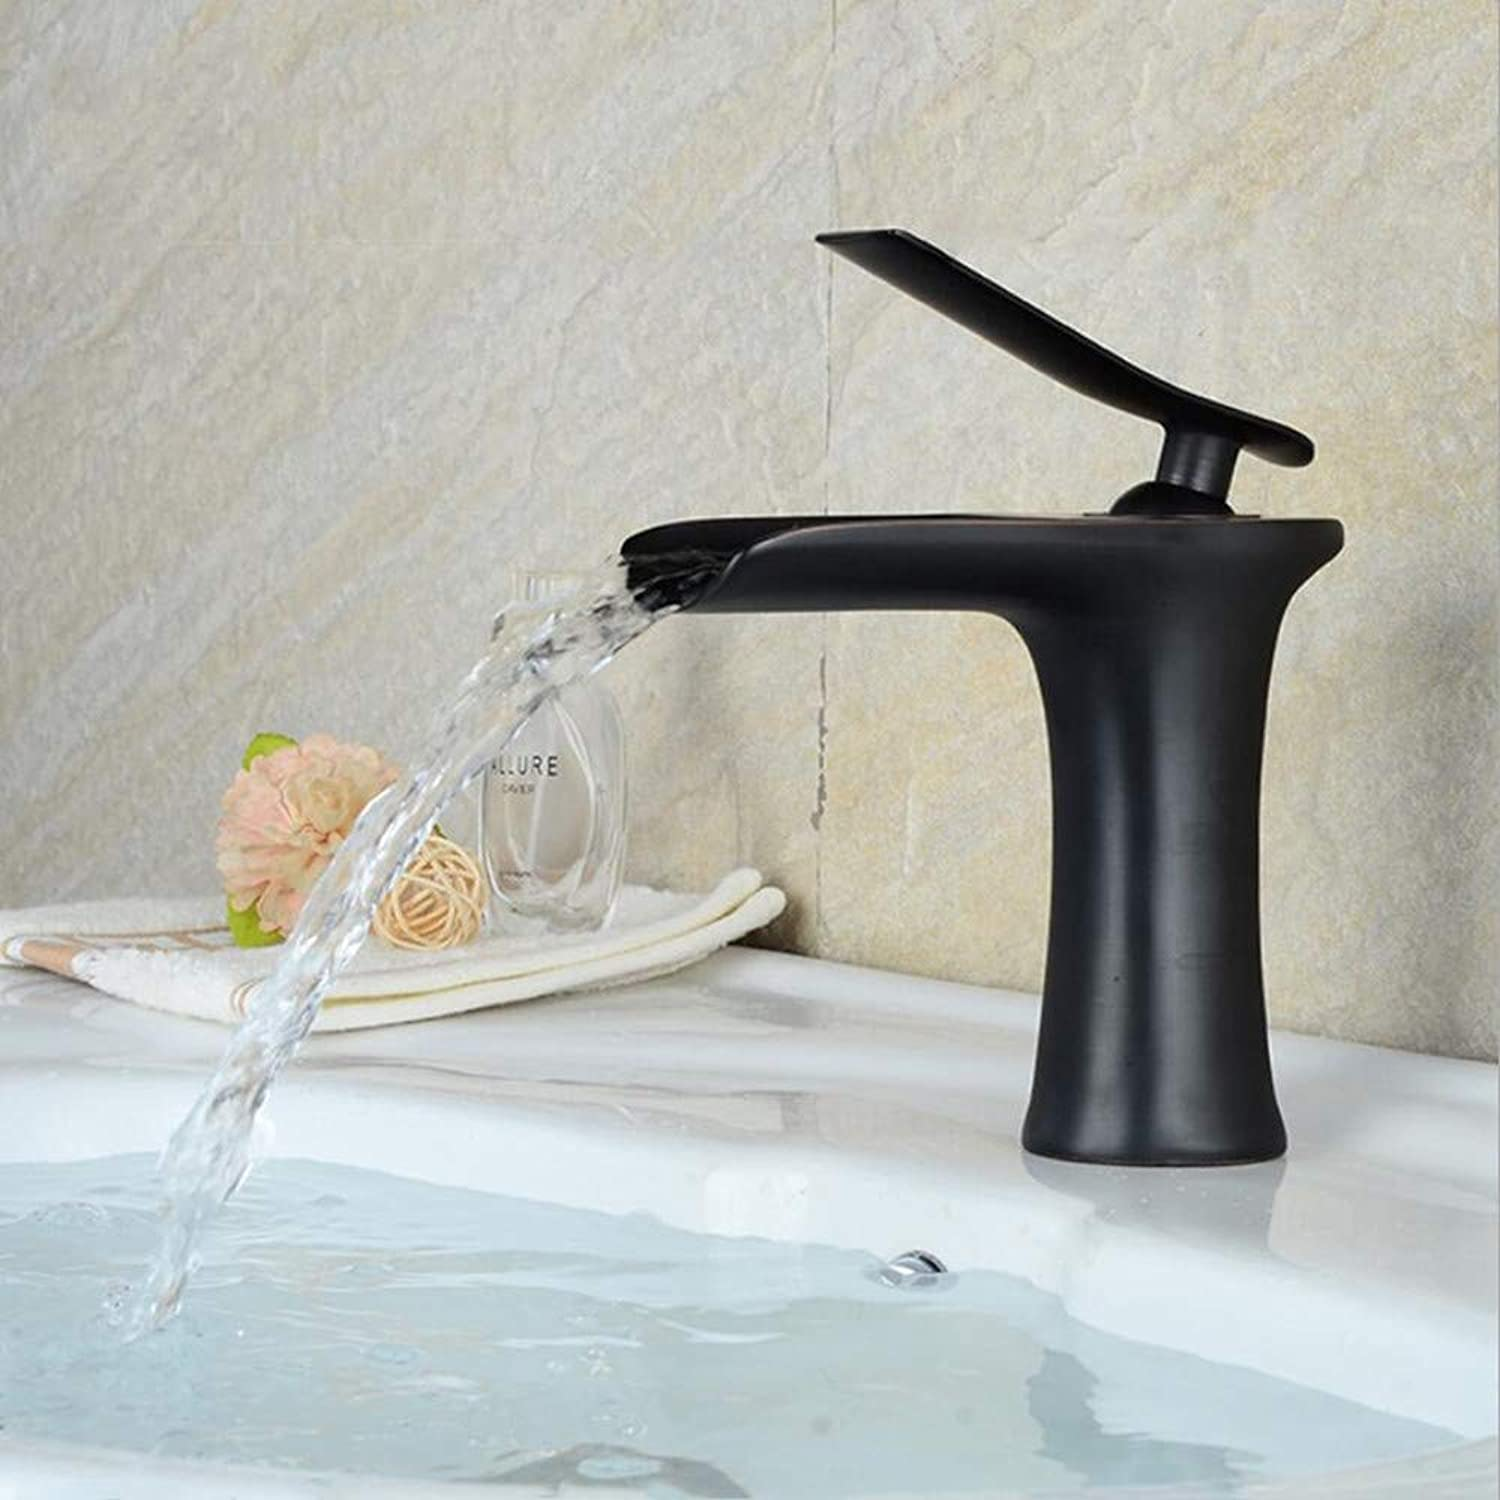 Ddl Wasserfall Faucet Bathroom Vanity Wash Basin Hot and Cold Faucet, Electroplated Tile Sink Hot and Cold Faucet,schwarz